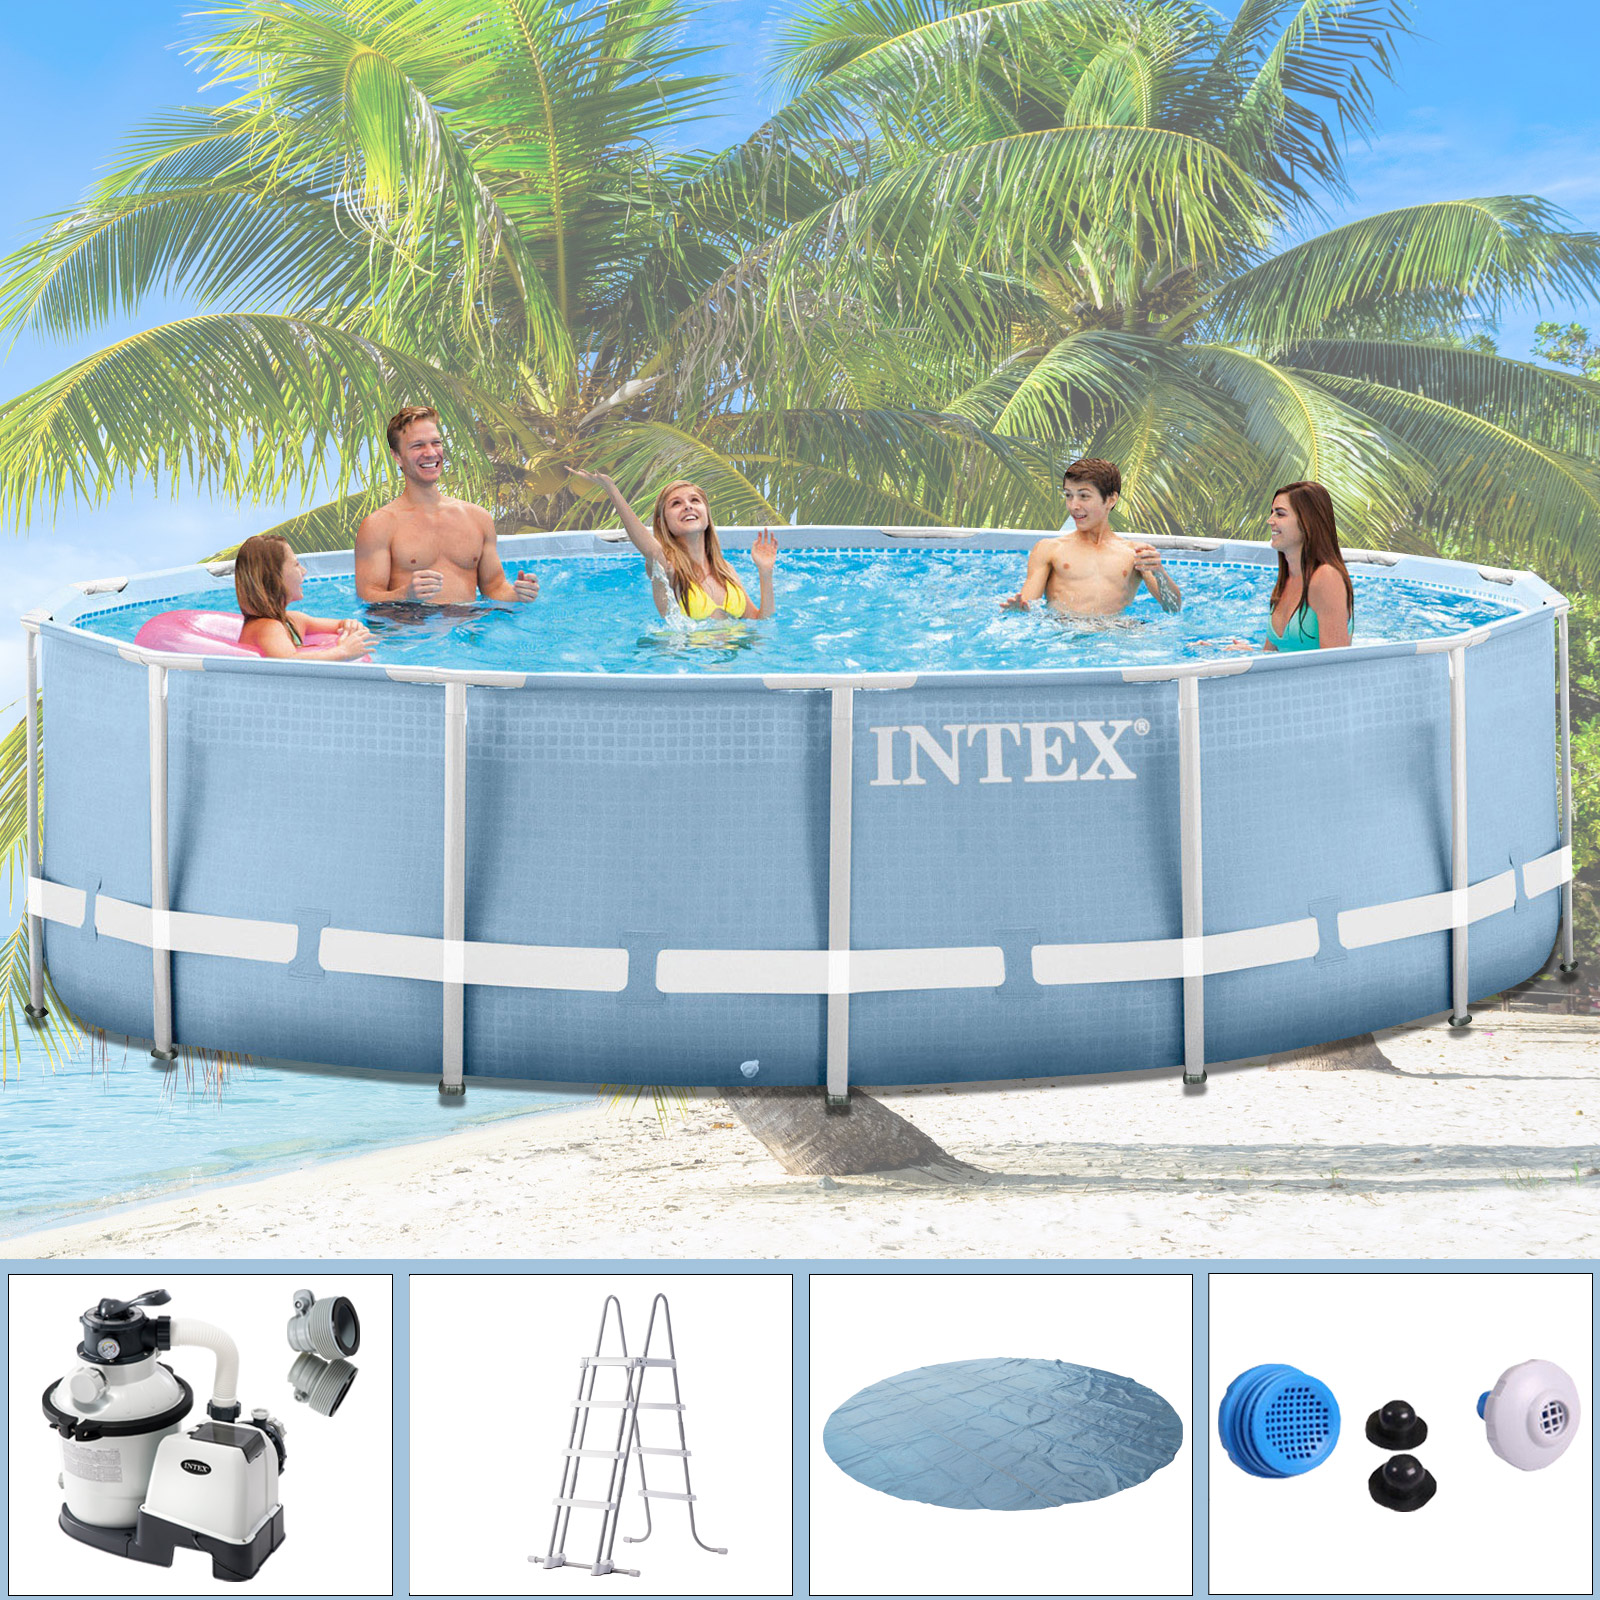 Intex Pool Komplettset Mit Sandfilteranlage Intex 457x122 Komplettset Swimming Pool Schwimmbad Frame